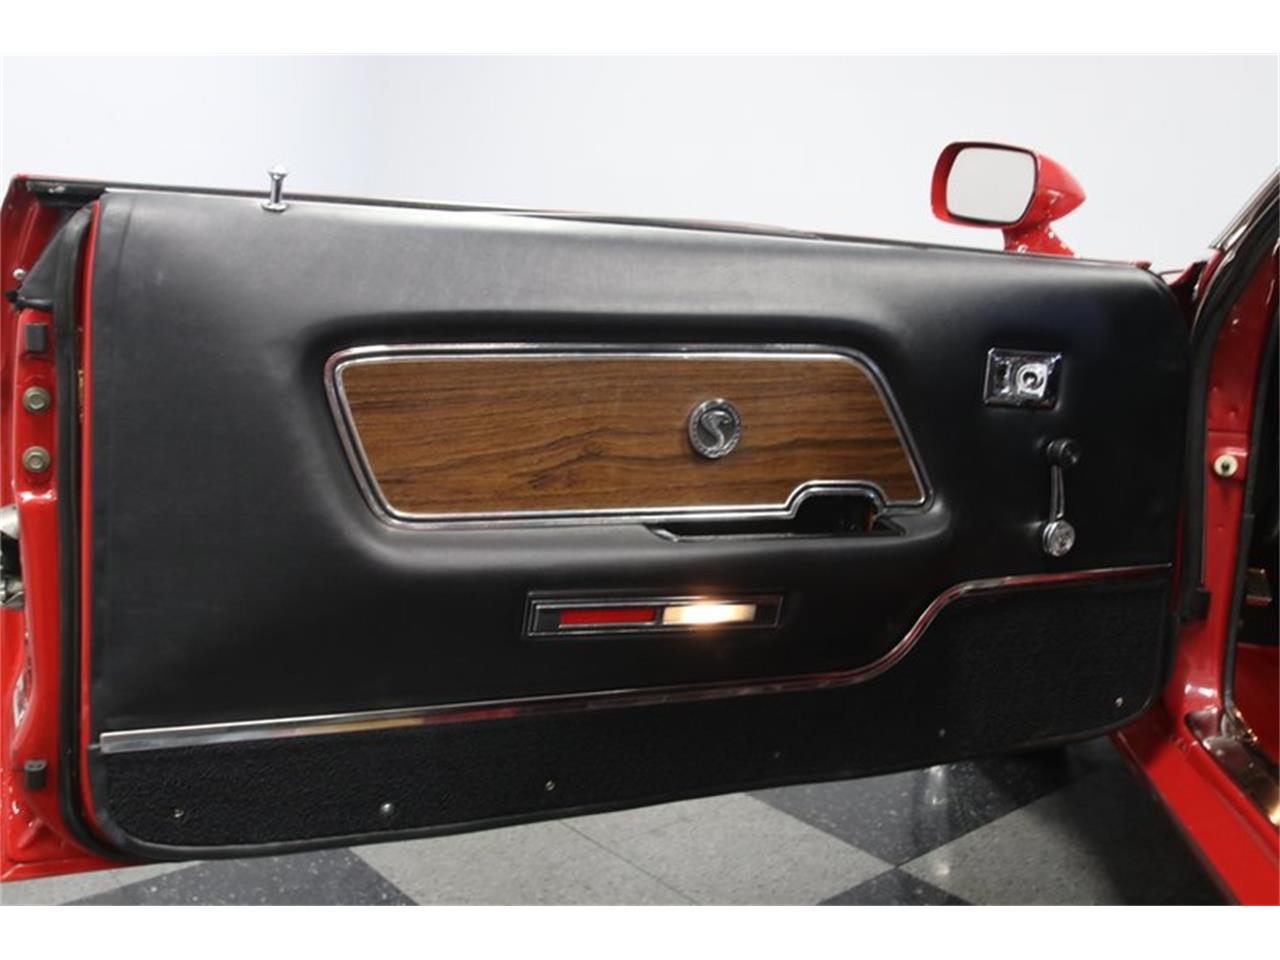 Large Picture of Classic '69 Mustang located in North Carolina - $124,995.00 - PHUN